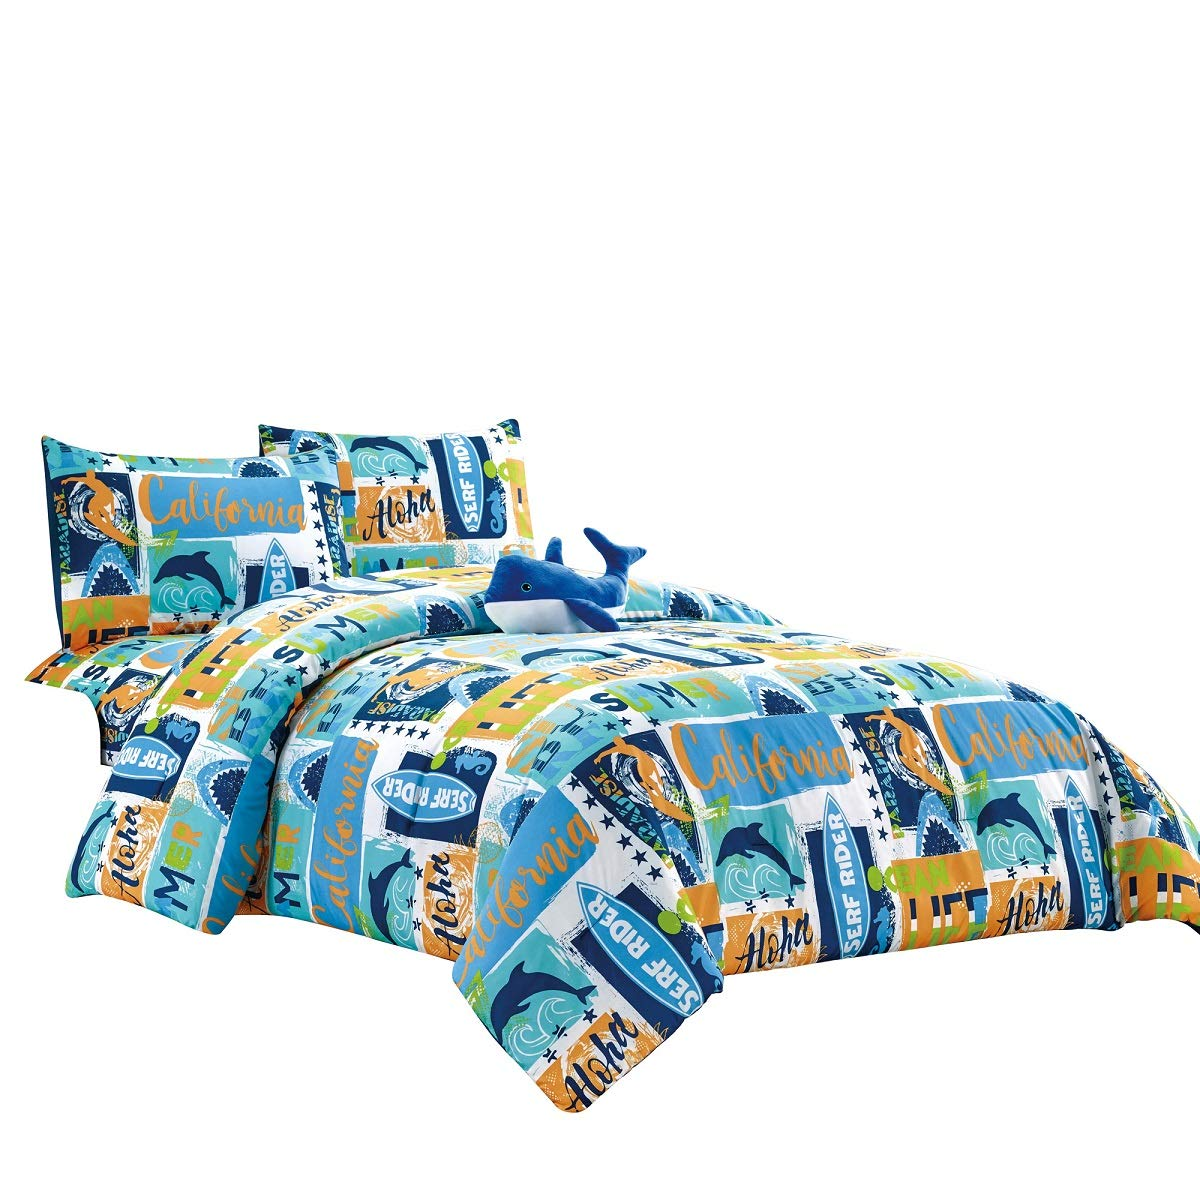 WPM Kids Collection Bedding 4 Piece Blue Ocean Life Twin Size Comforter Set with Sheet Pillow sham and Whale Toy Fun Sun Water surf Design Ocean Life Whale